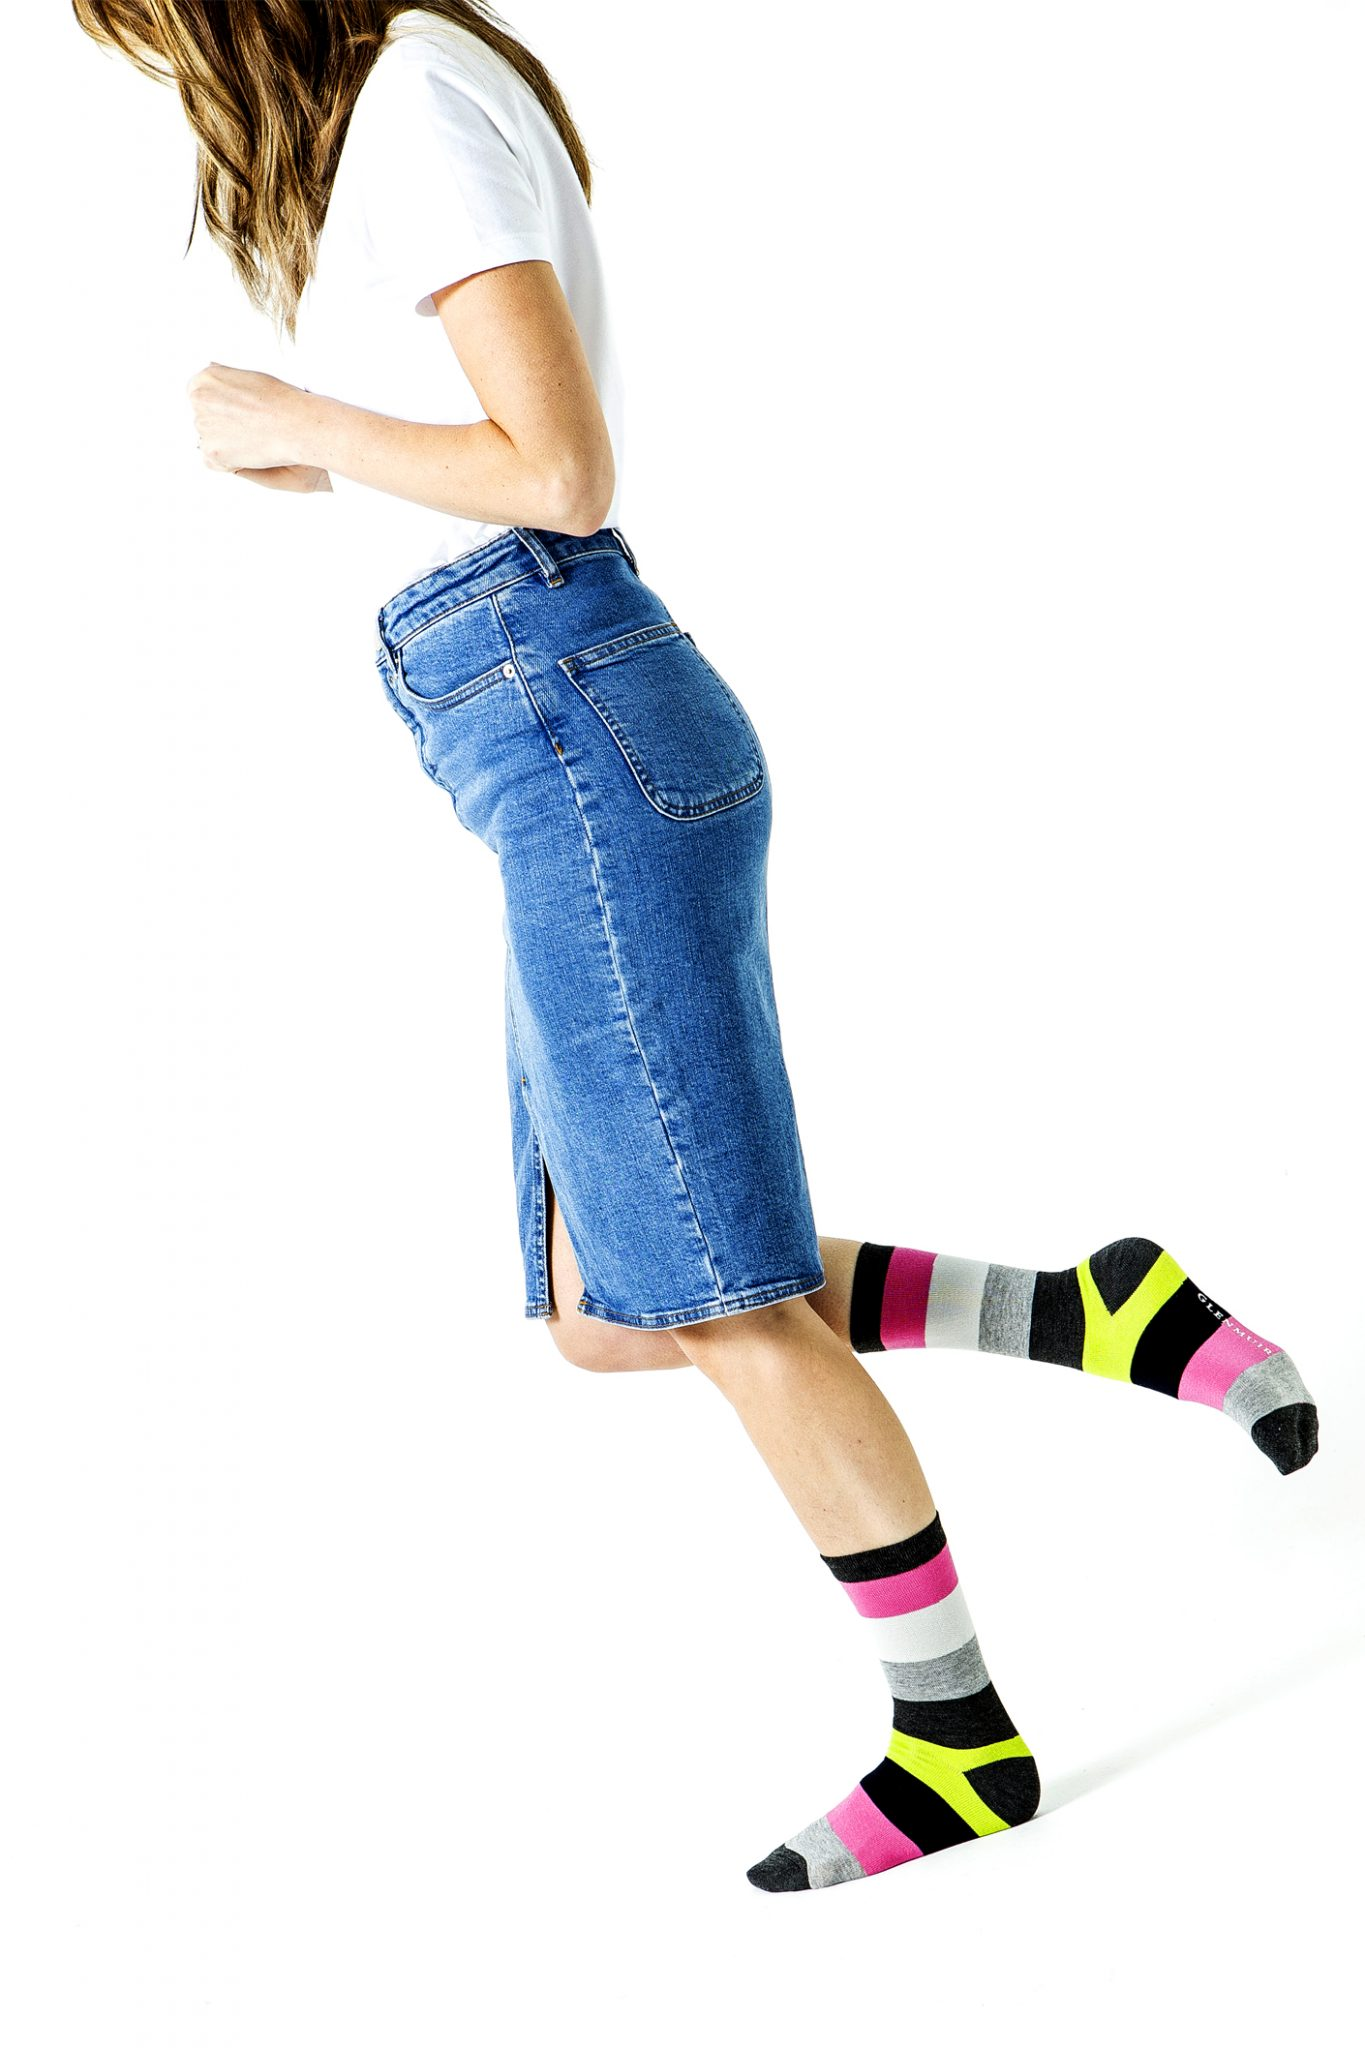 fashion-photography-for-Sock-Shop-UK-in-my-manchester-studio